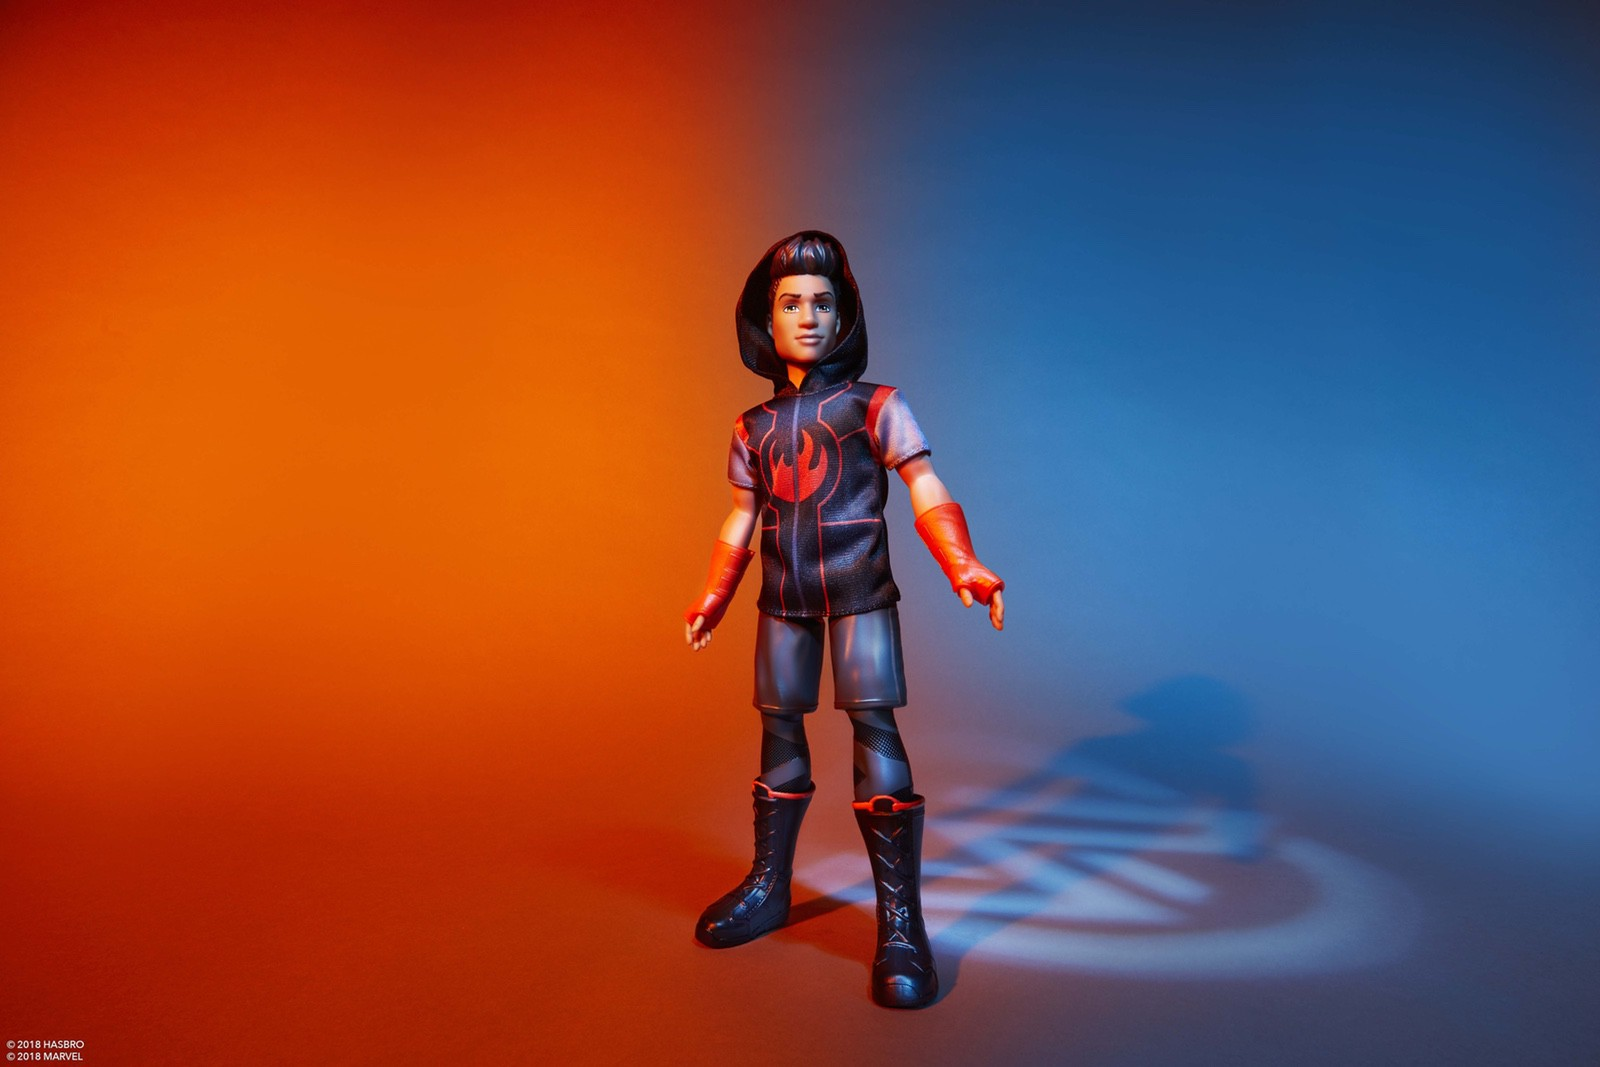 921c35a0c8155 Marvel Rising Secret Warriors Getting a Hasbro Toy Line | The Nerdy